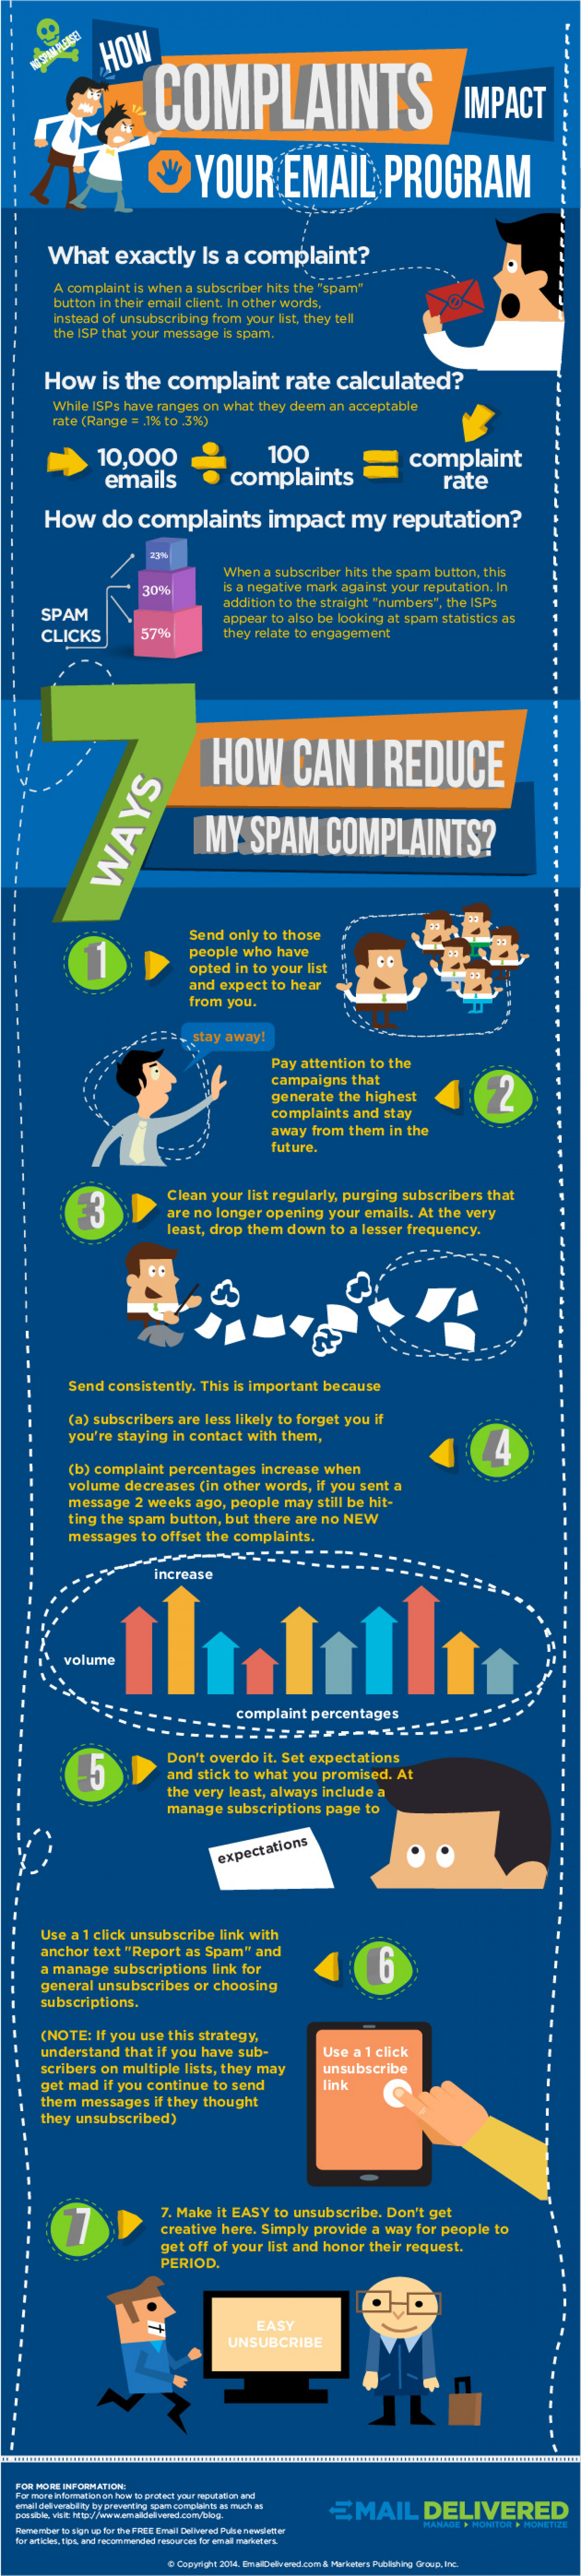 How Spam Complaints Impact Your Email Program Infographic